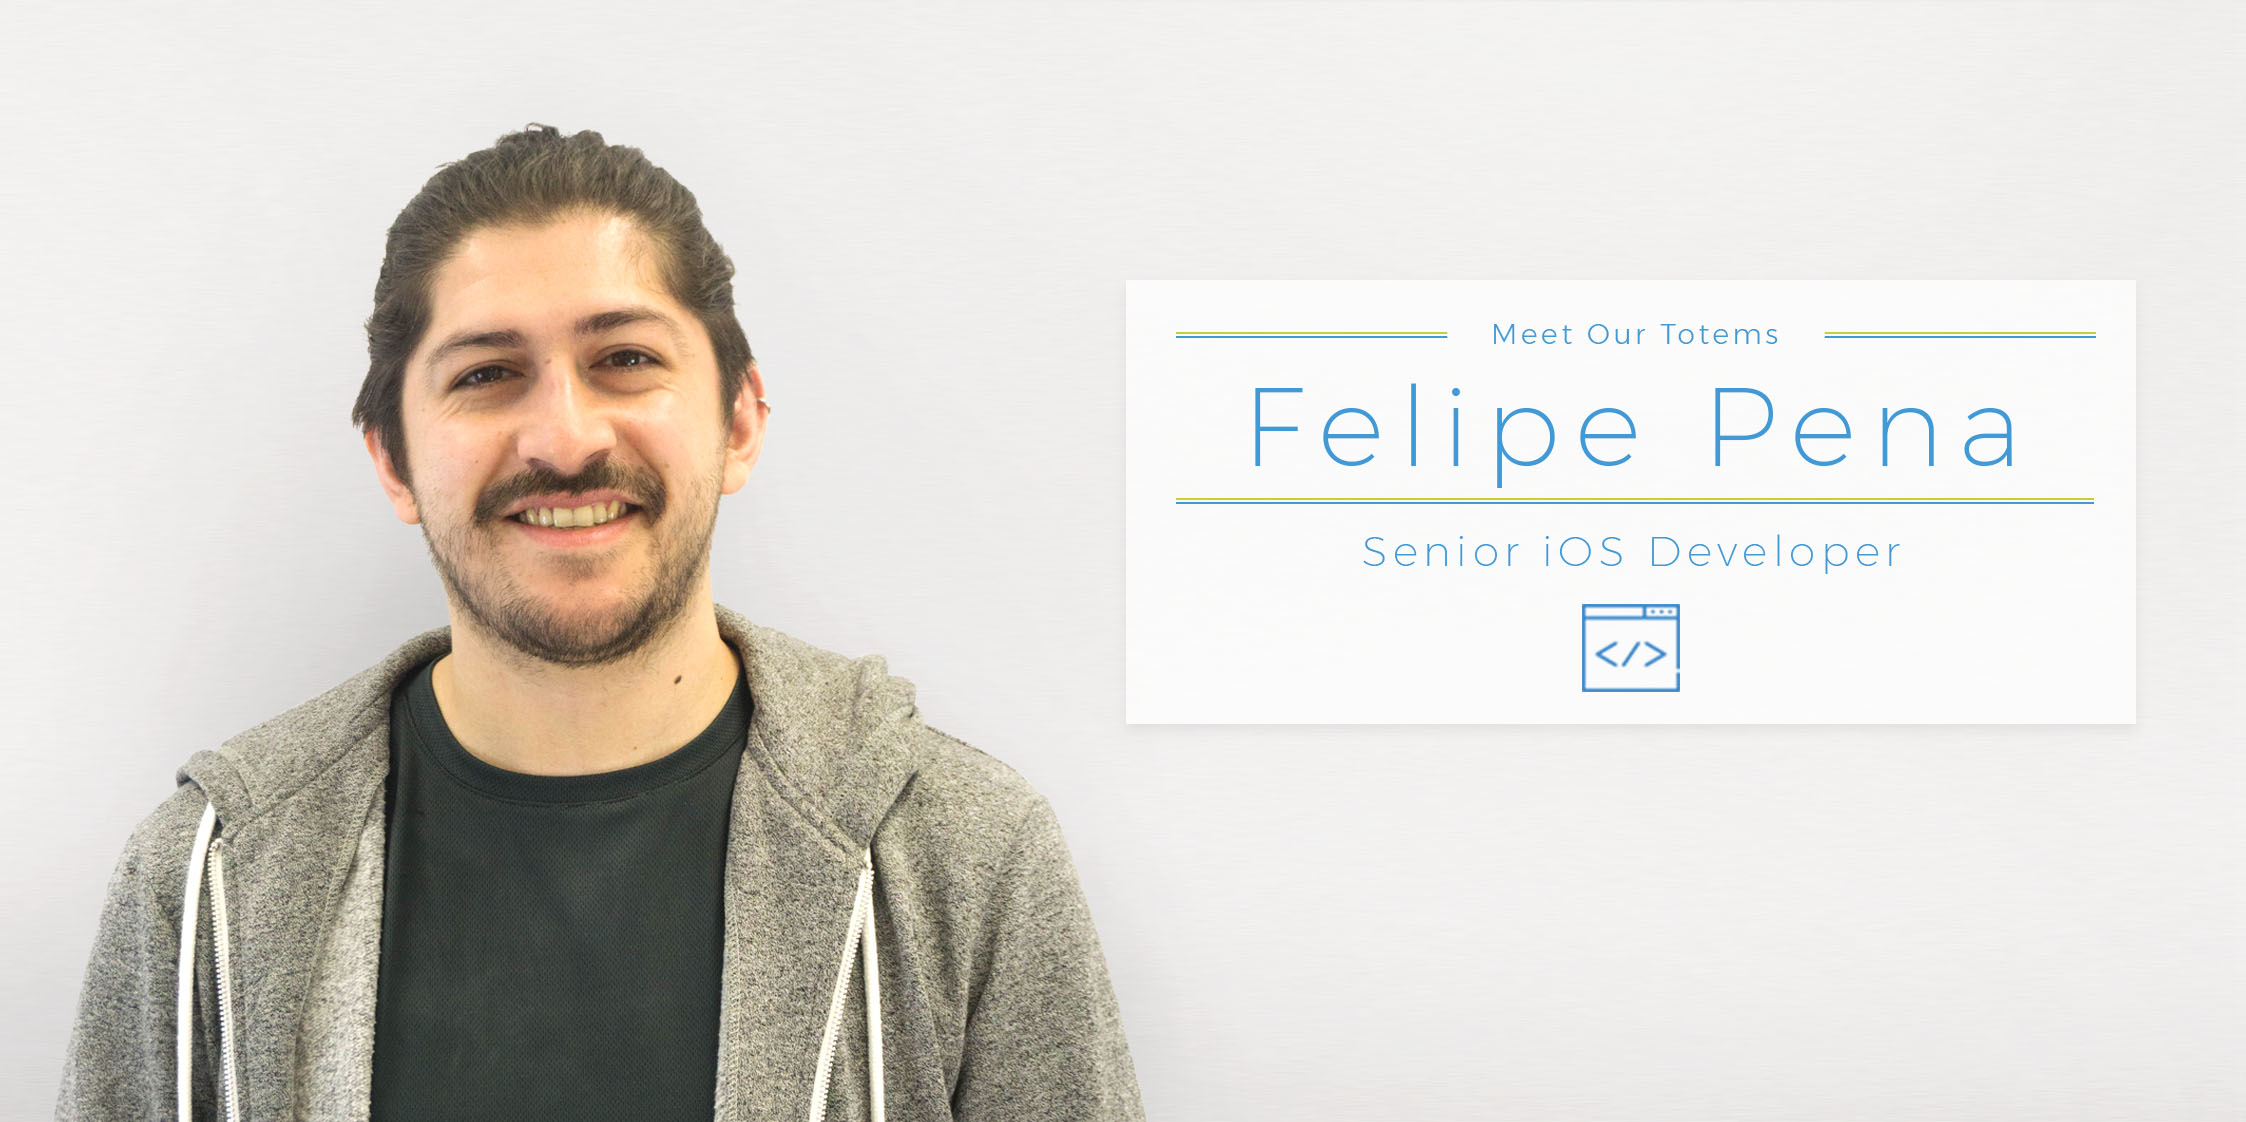 Meet Our Totems – Felipe